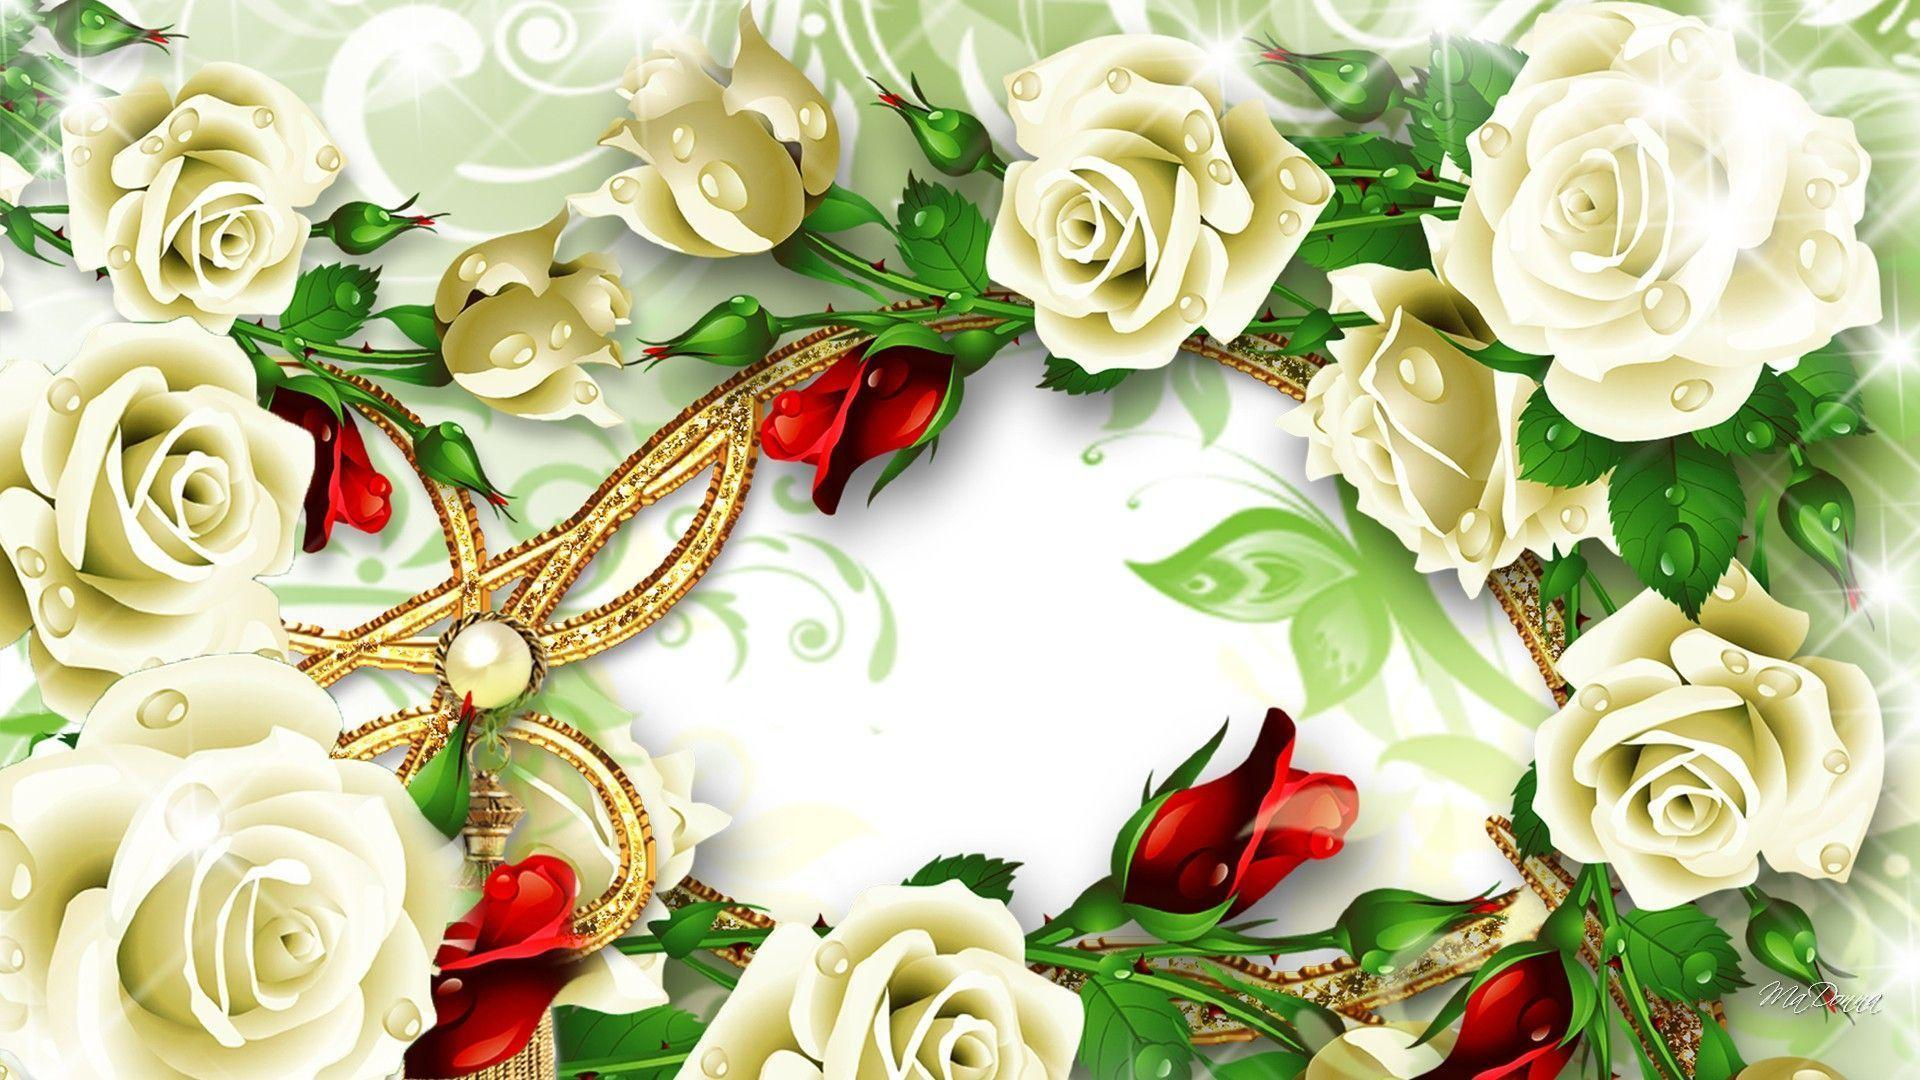 White Roses Backgrounds